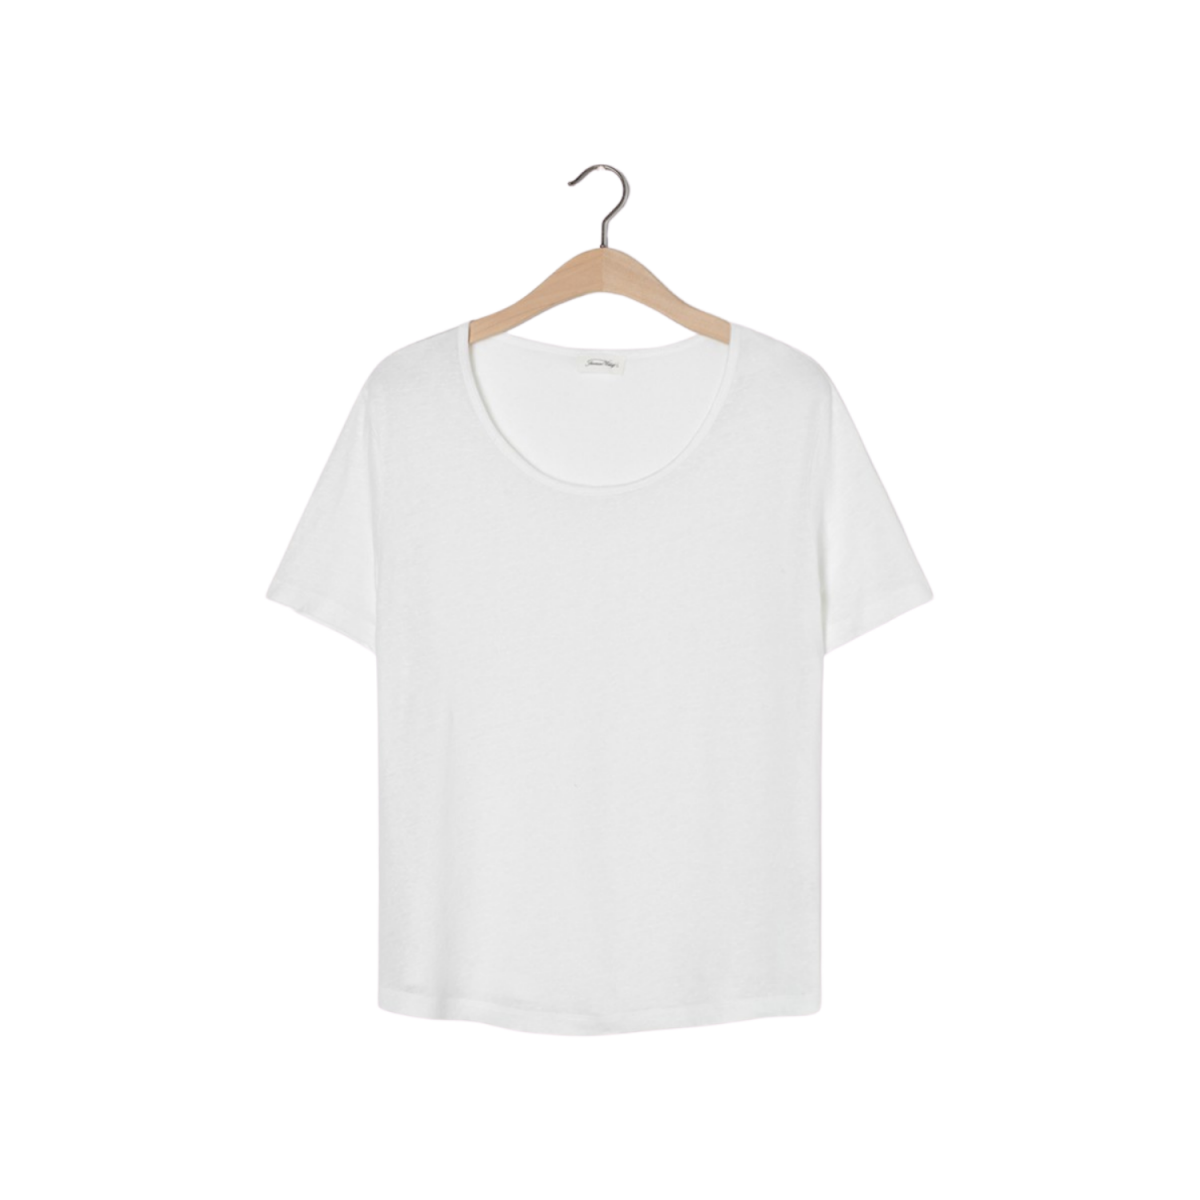 lolosister t-shirt - white